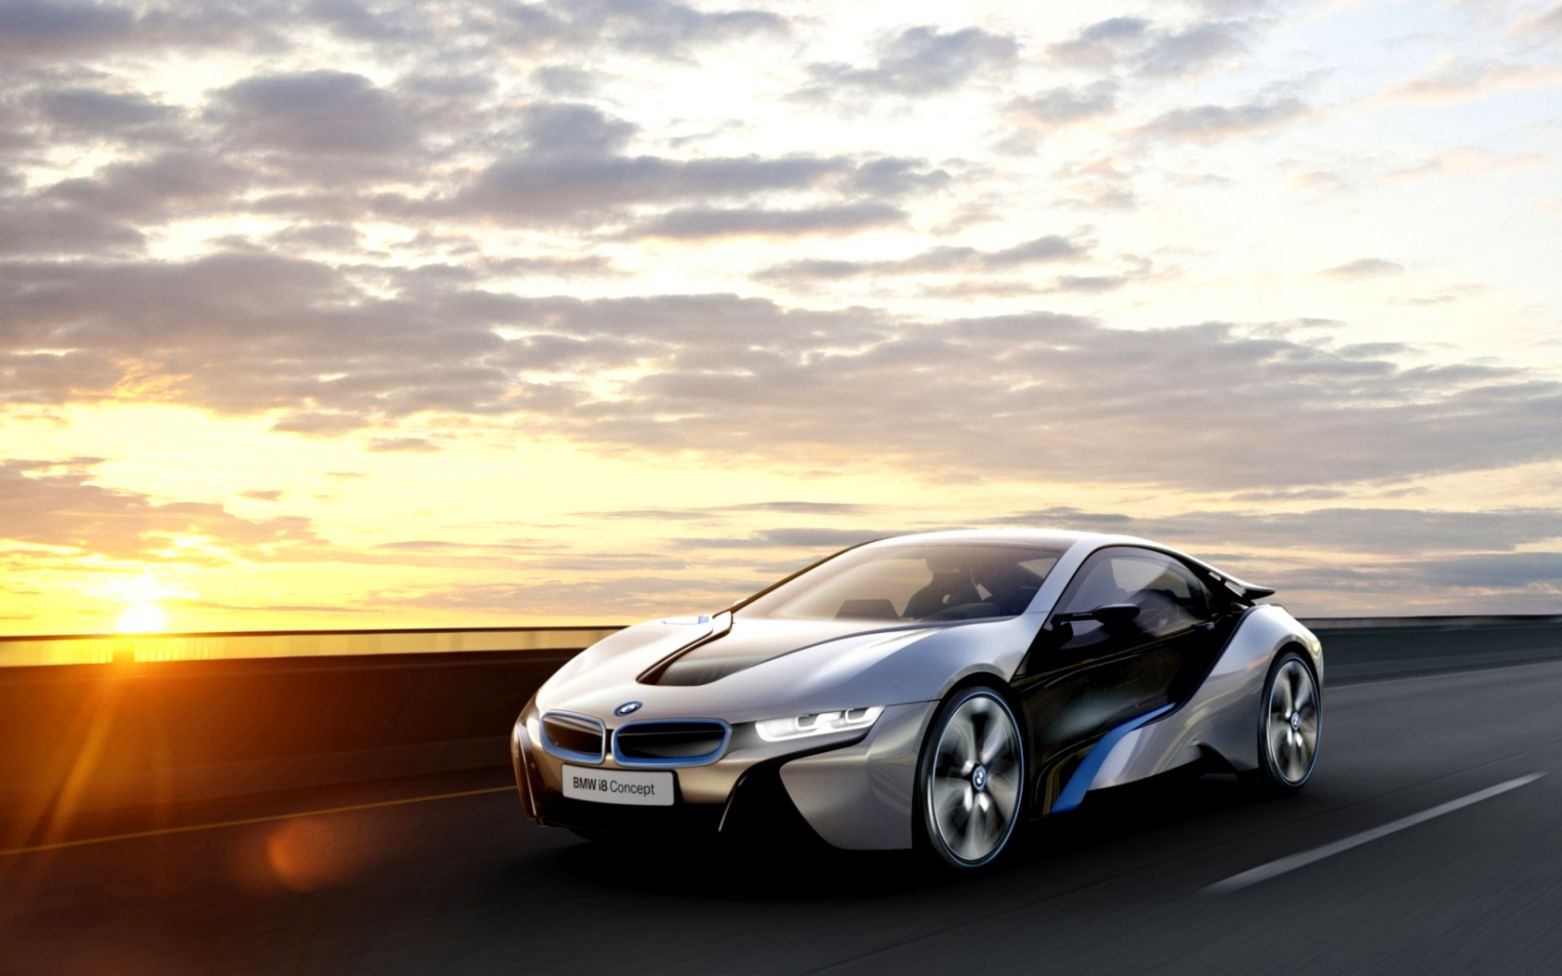 1562x976 - BMW i3 Concept Wallpapers 34